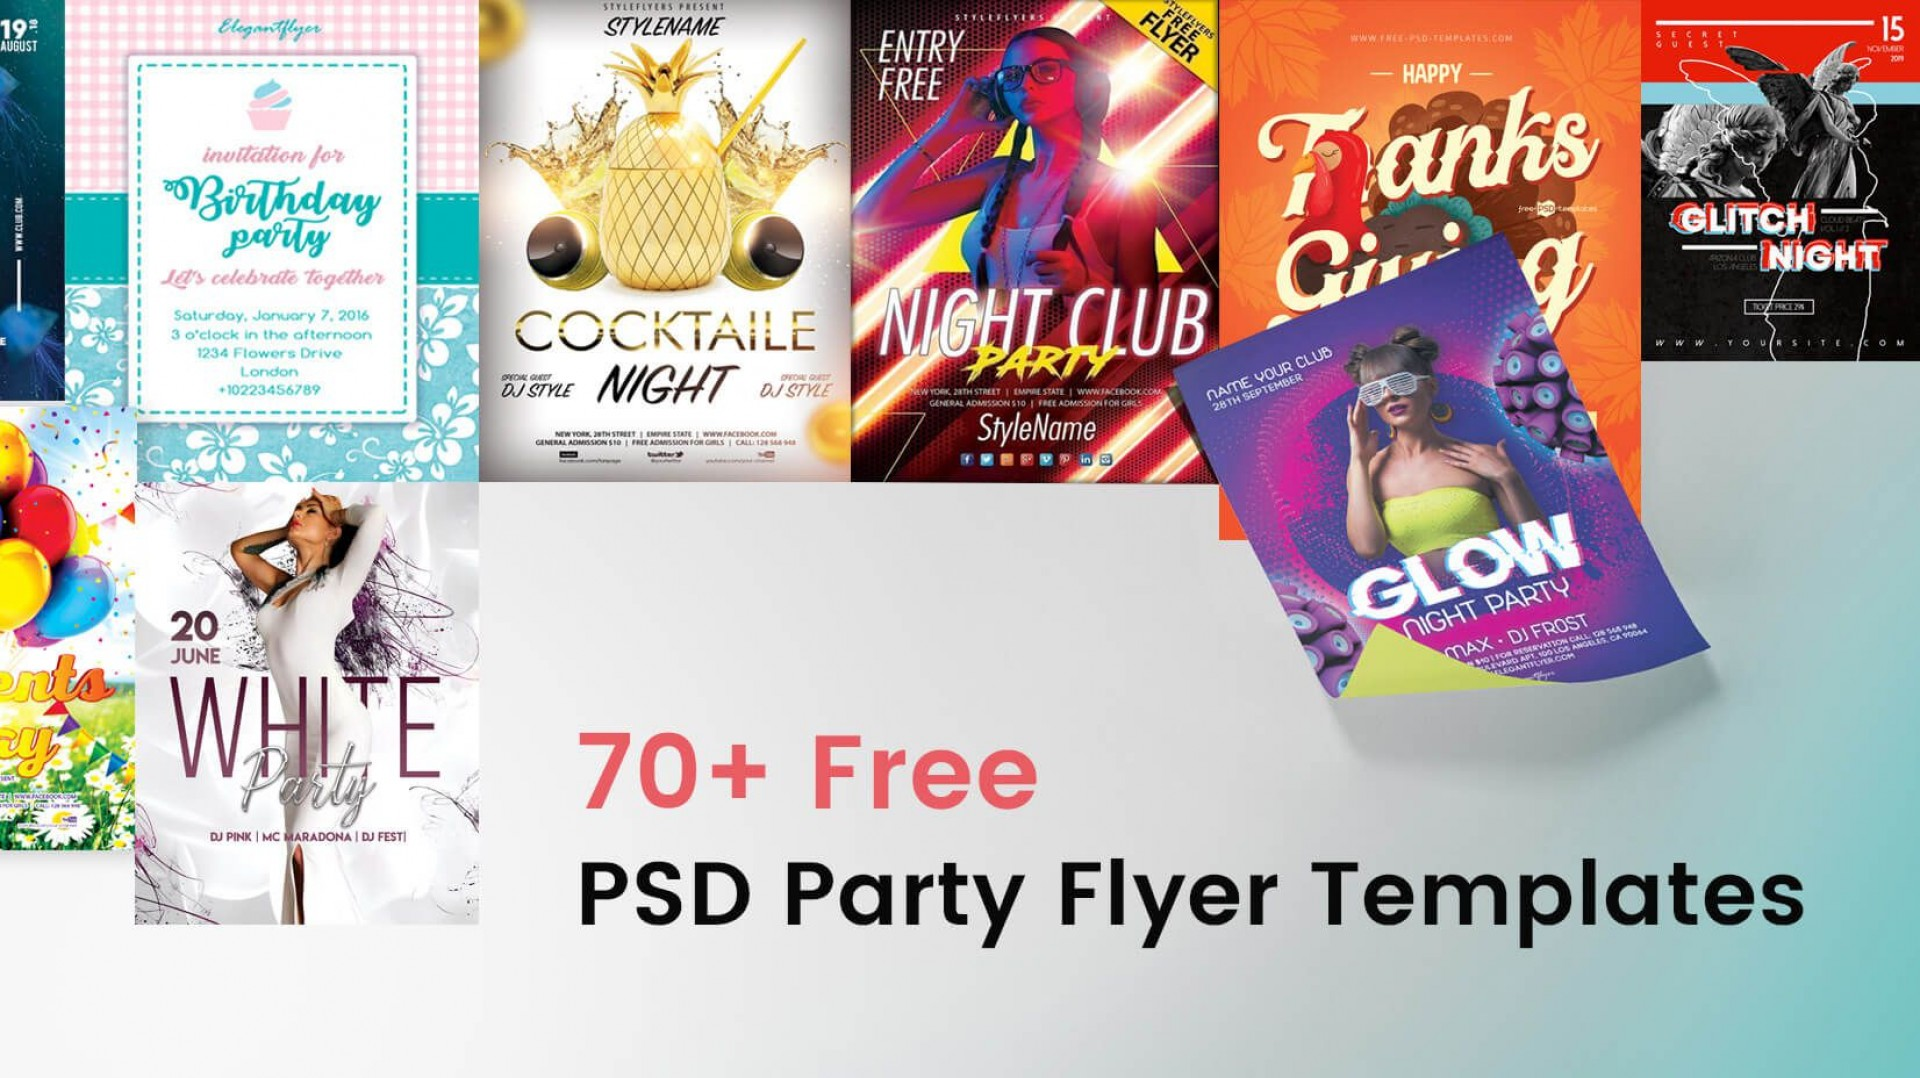 005 Awesome Free Pool Party Flyer Template Psd High Definition  Photoshop1920